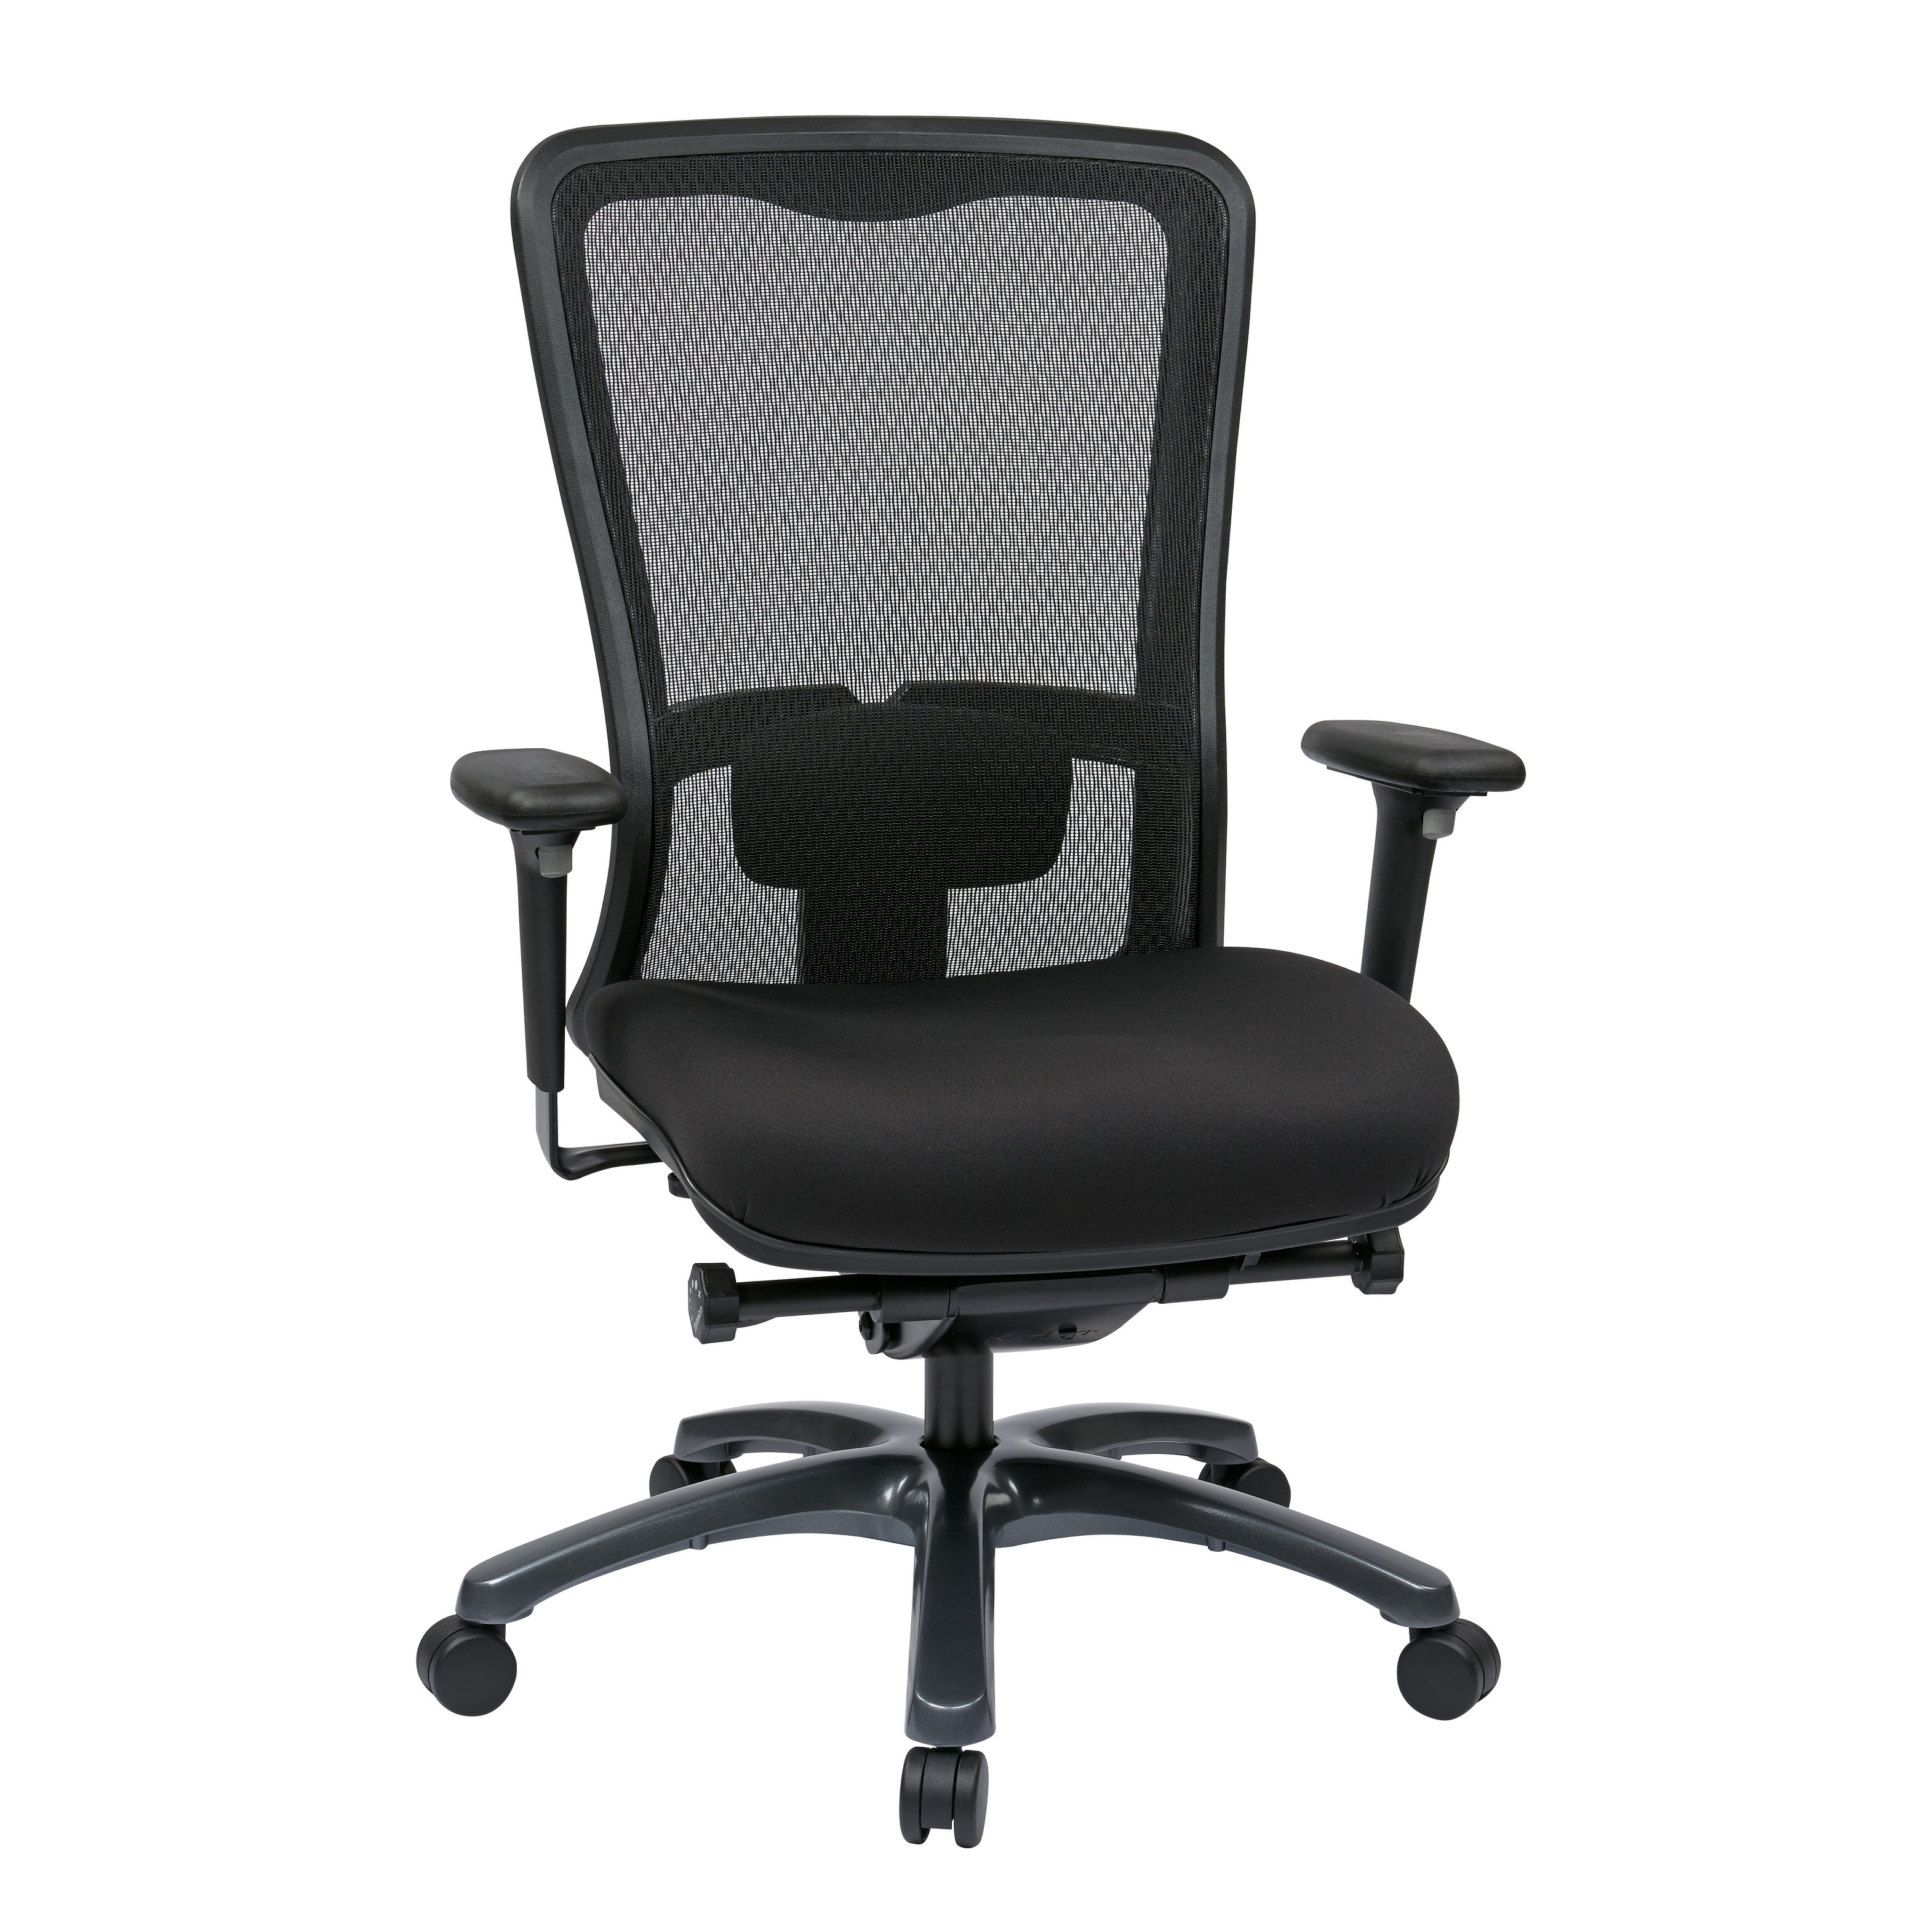 Pro Line Ii Breathable Progrid High Back Ergonomic Office Chair